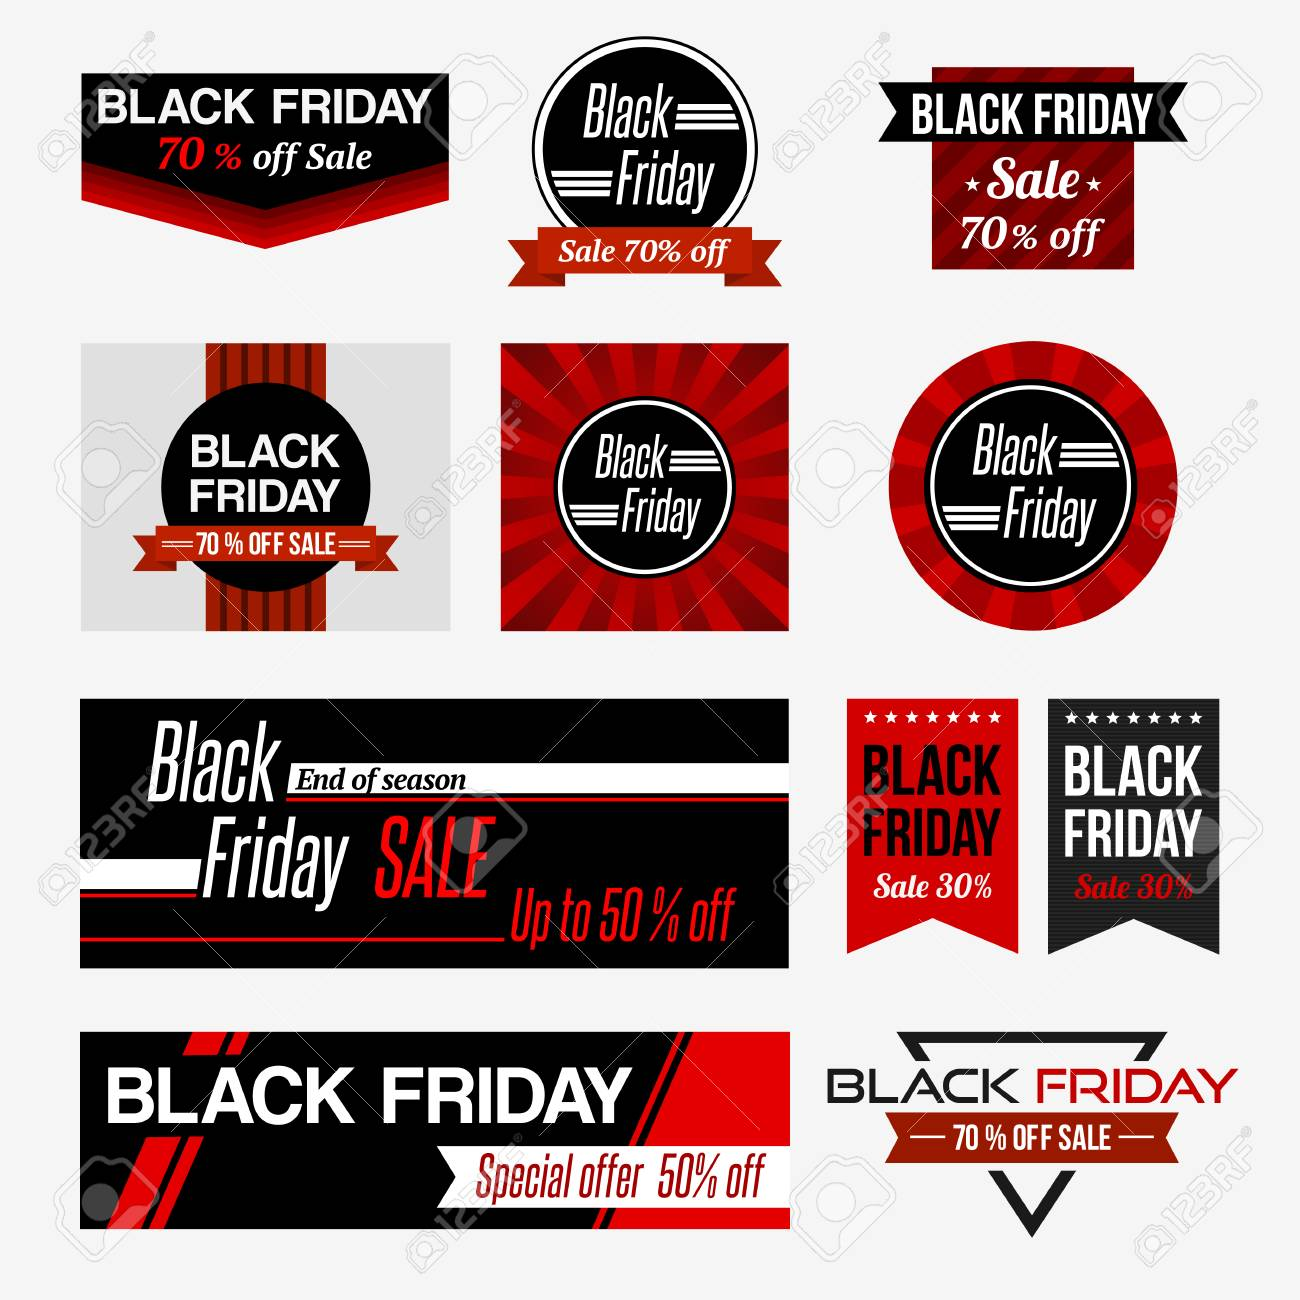 Sale Black Friday Set Of Black Friday Sale Black Friday Banner Design Templates